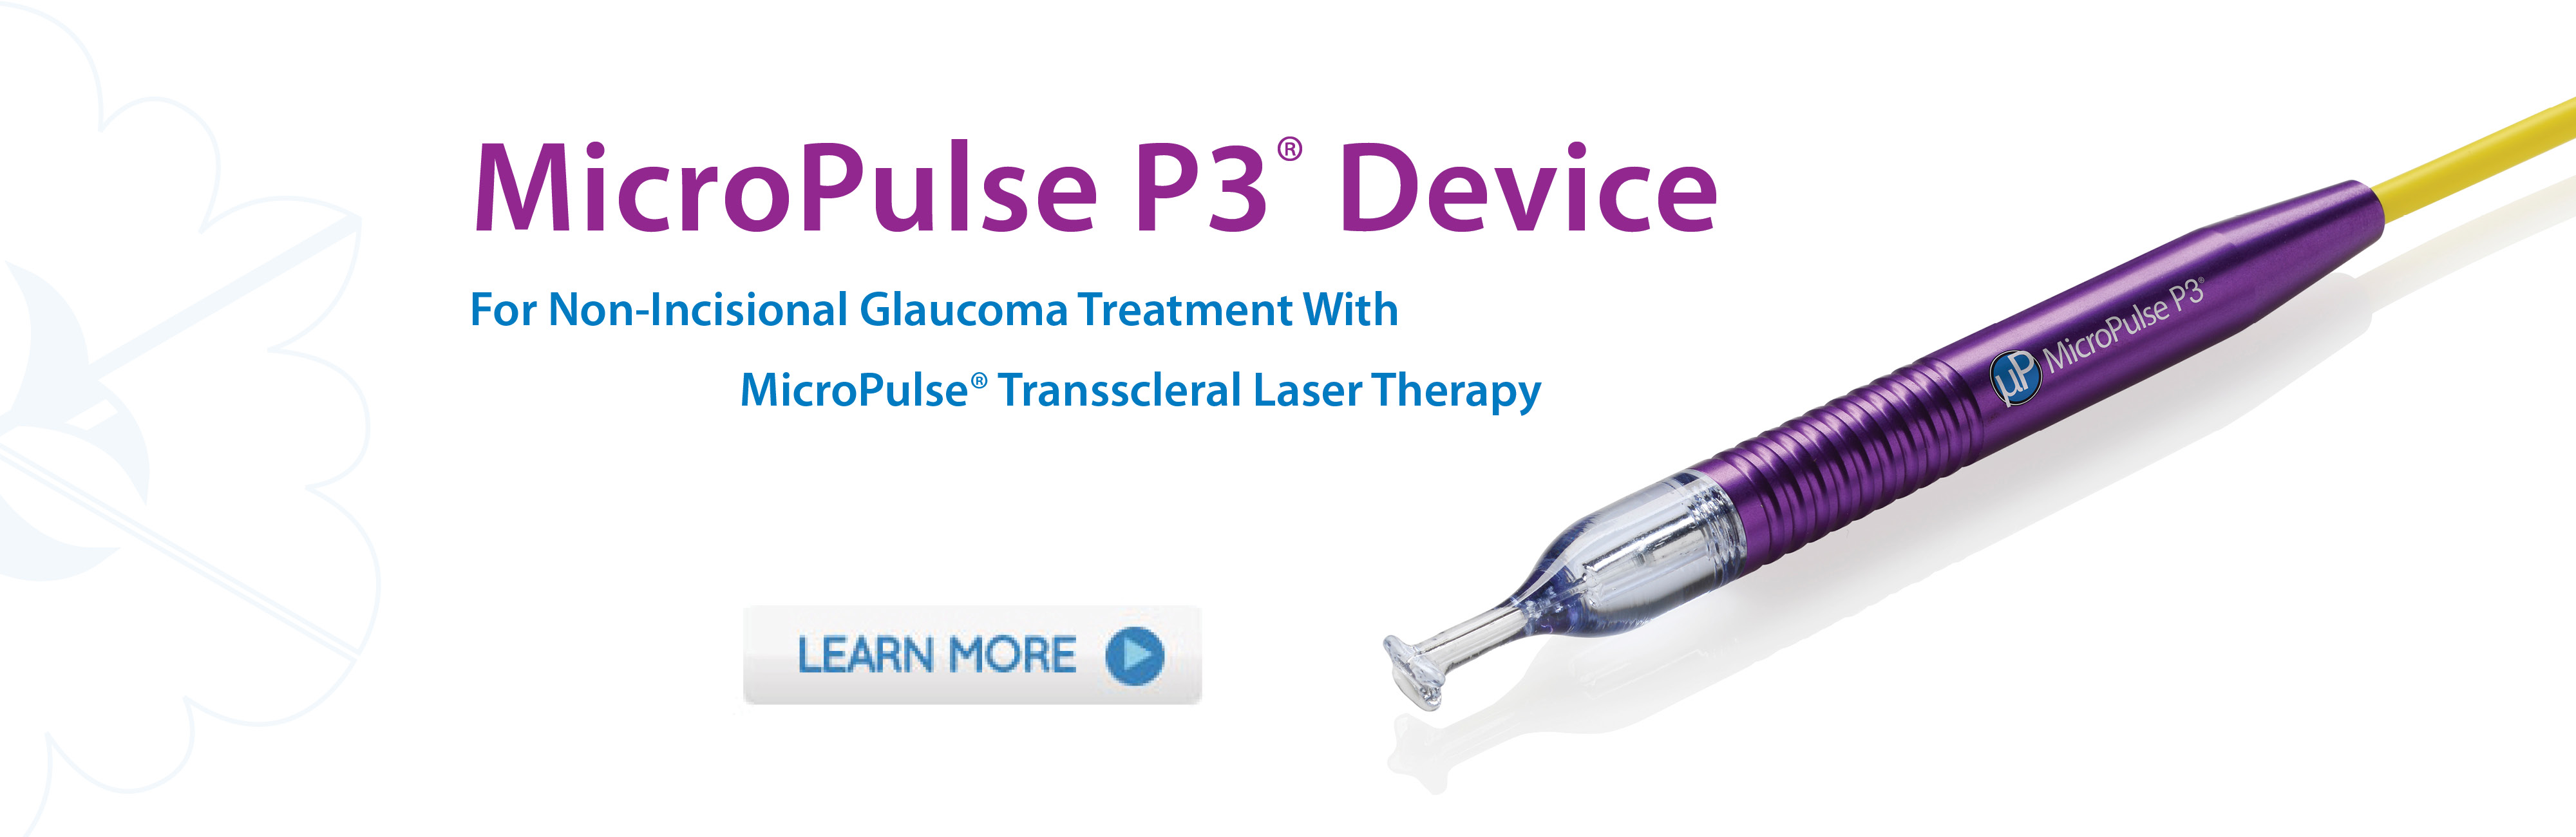 Revised MicroPulse P3 Device now available